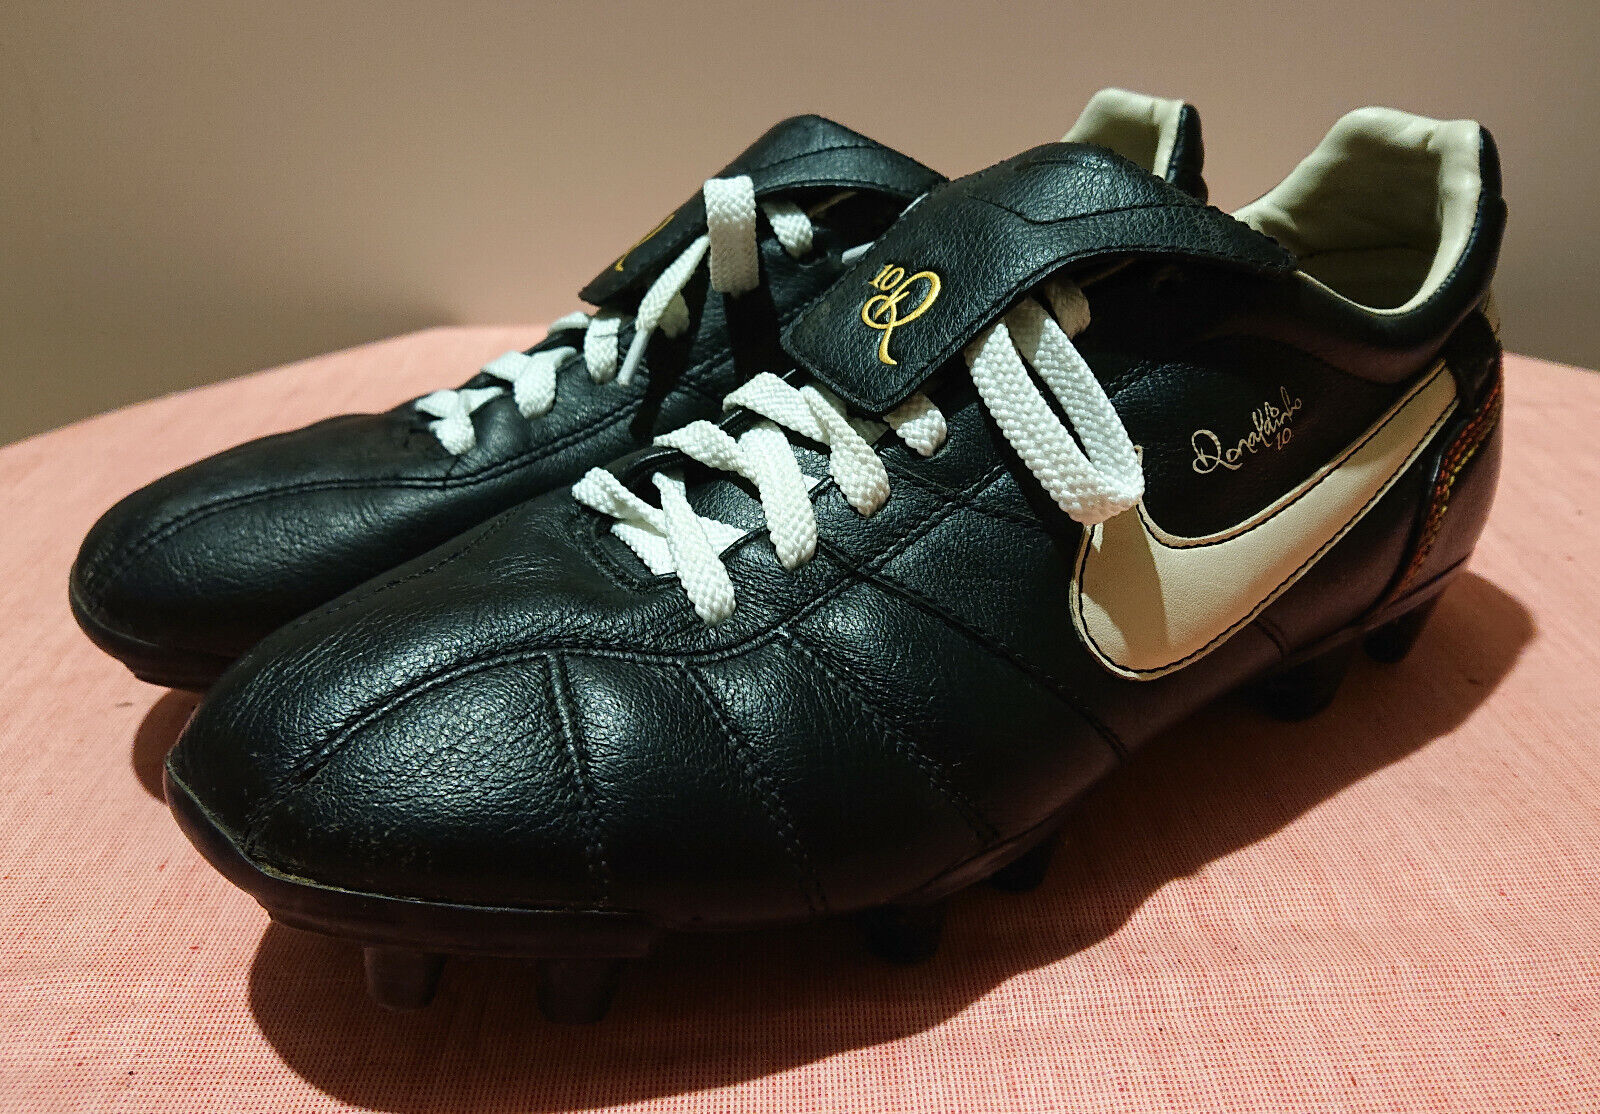 Paseo Productivo Custodio  Nike Tiempo Legacy Ag-r Mens Football BOOTS 717142 007 Soccer Cleats UK 6  US 7 EU 40 for sale online | eBay